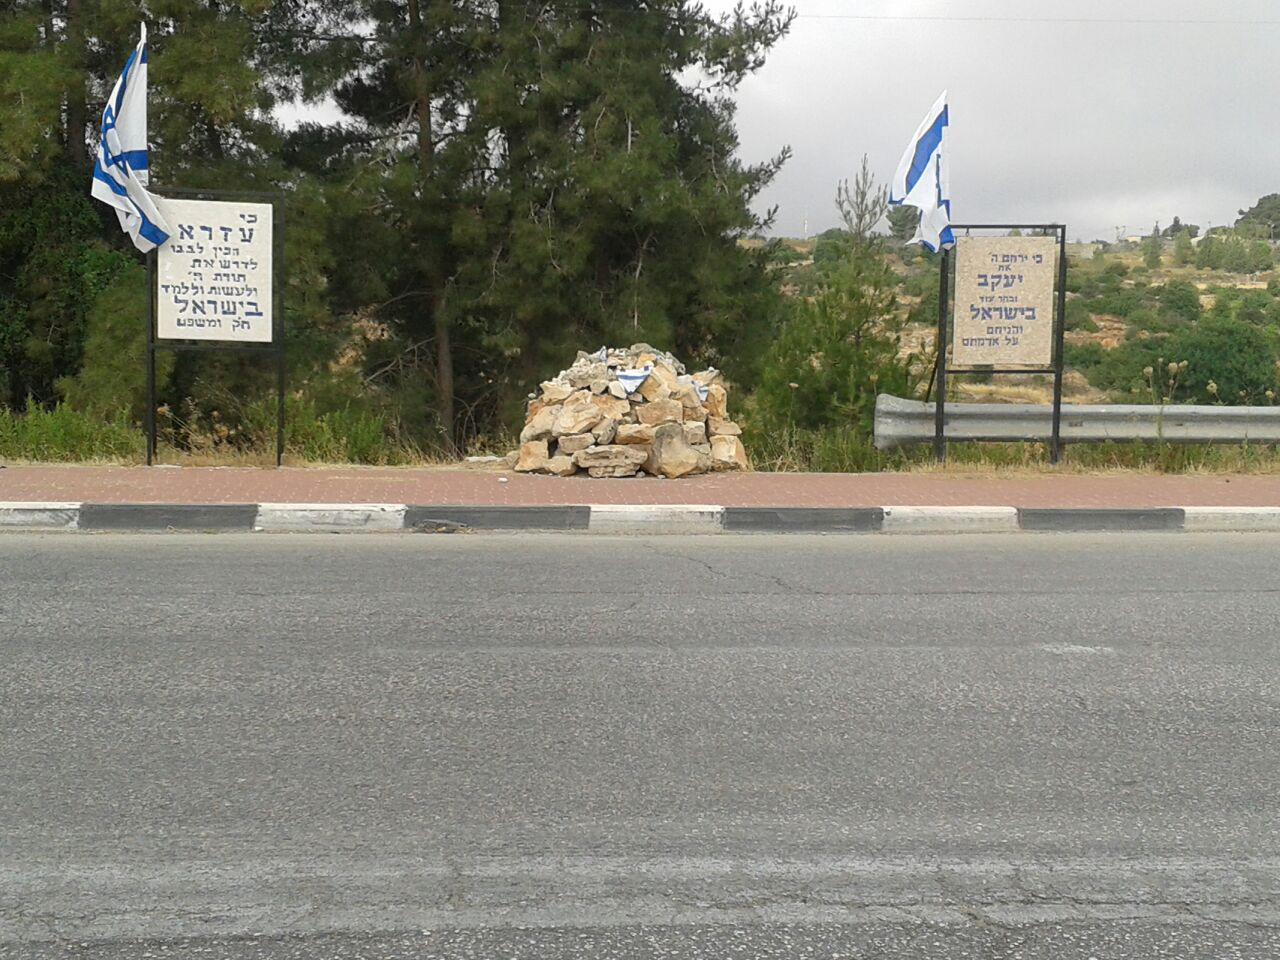 [Memorial to Ezra Schwartz and Yaakov Don at site of attack][Photo credit: Reva Burstein]